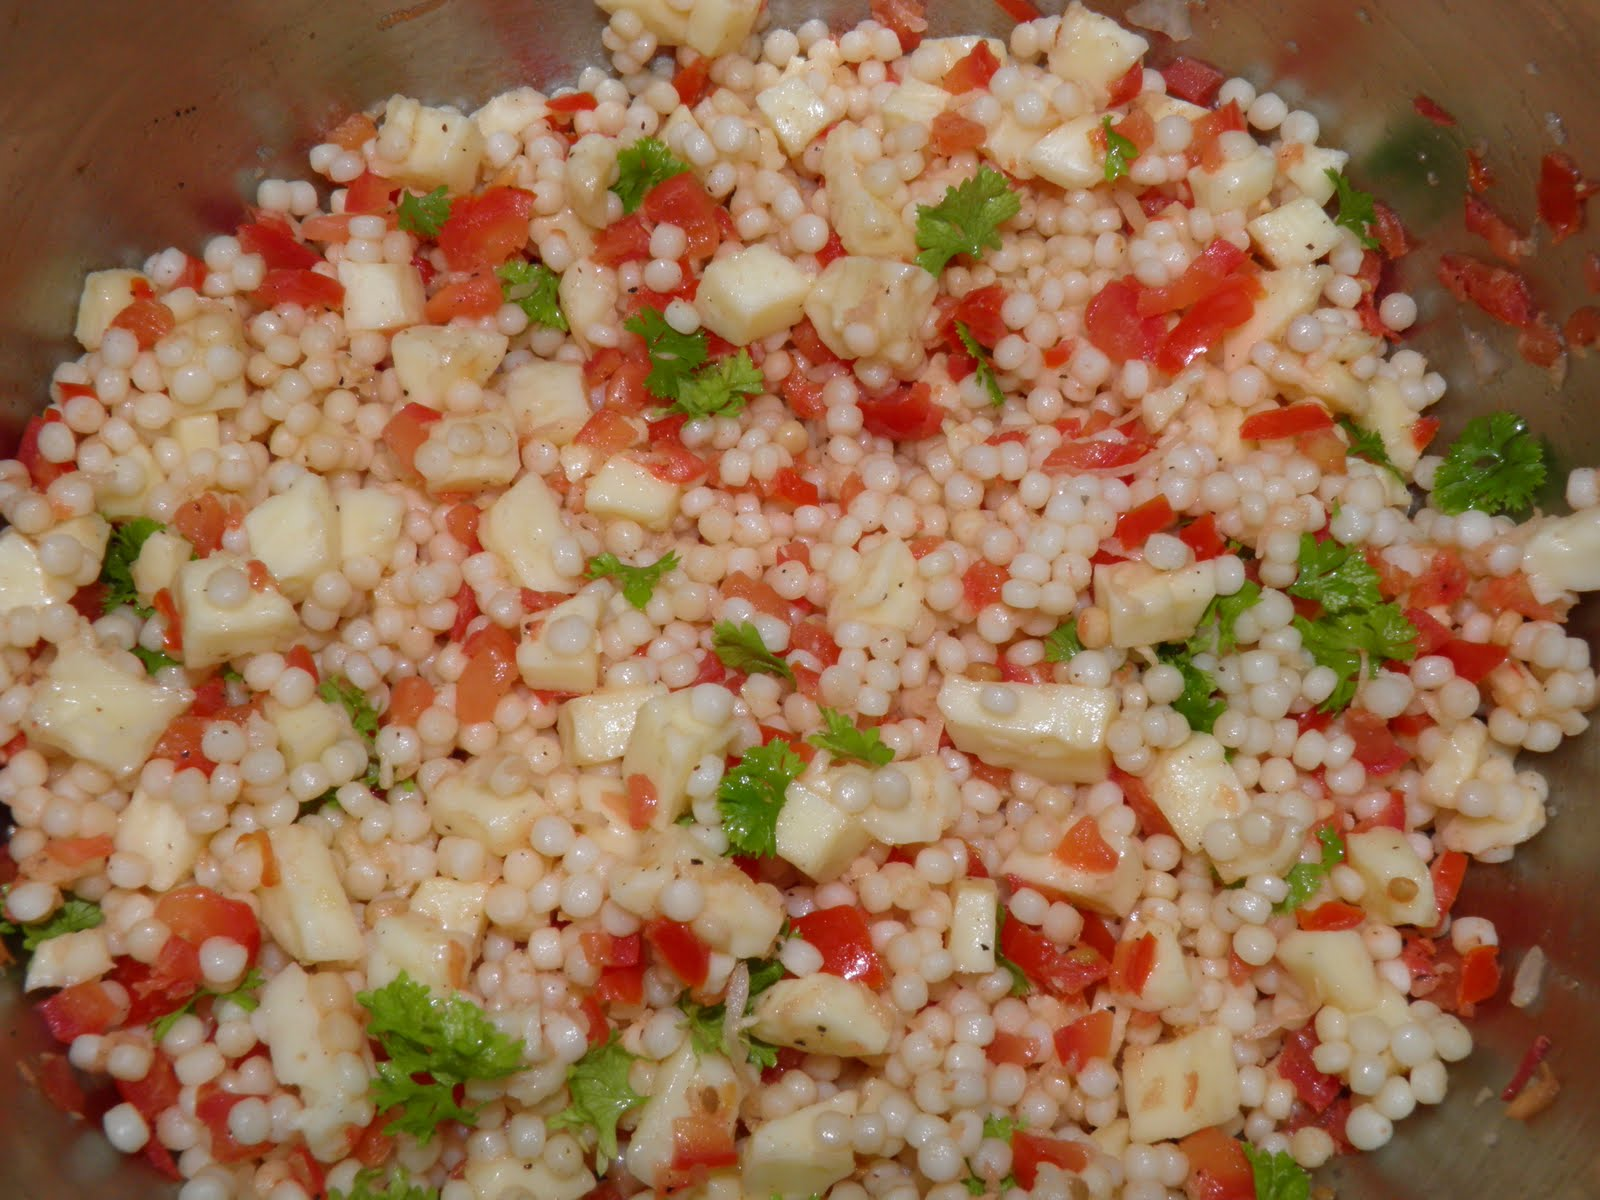 Cold+israeli+couscous+salad+recipe